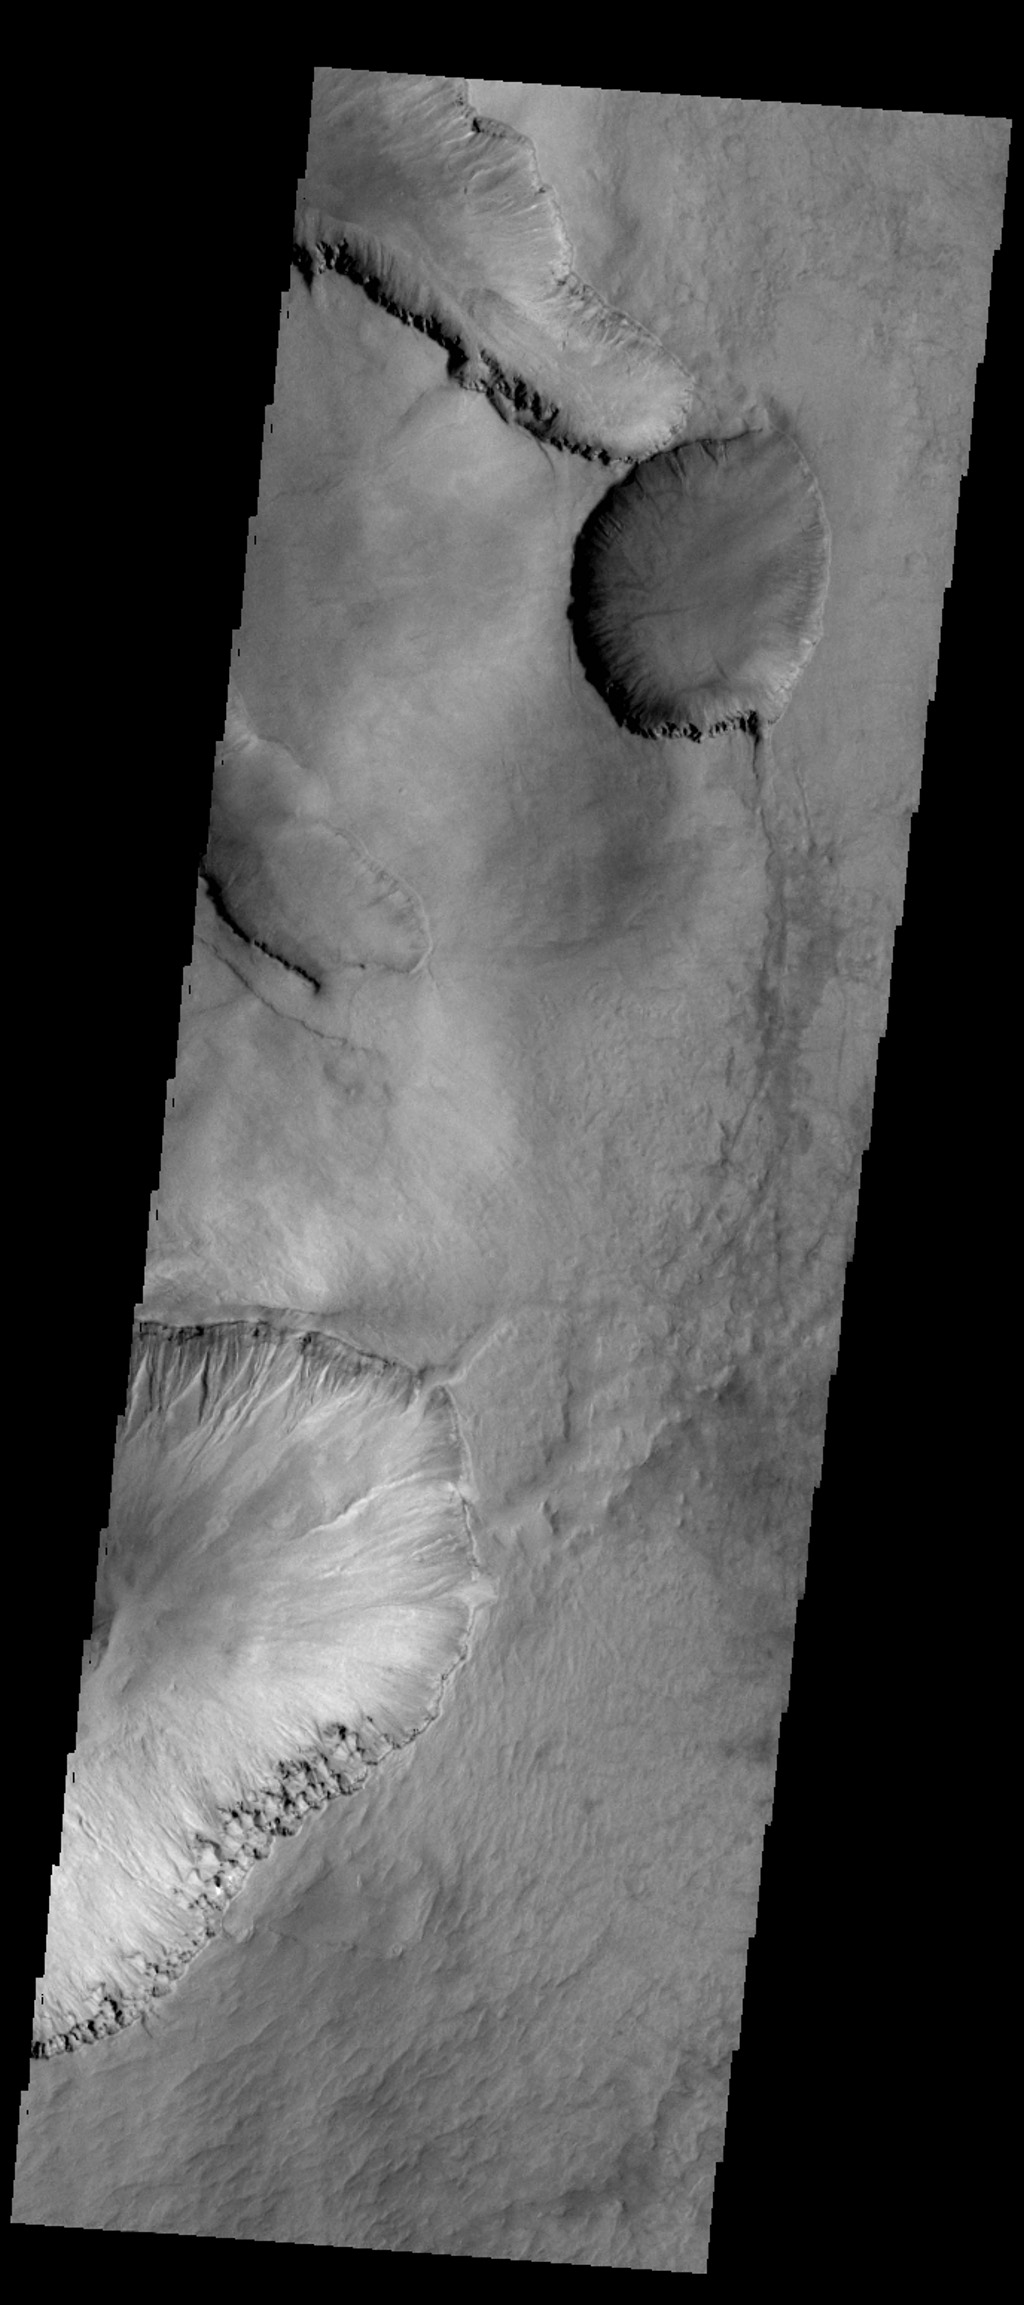 The depressions in this image captured by NASA's 2001 Mars Odyssey spacecraft are located in the material that fills Asimov Crater.